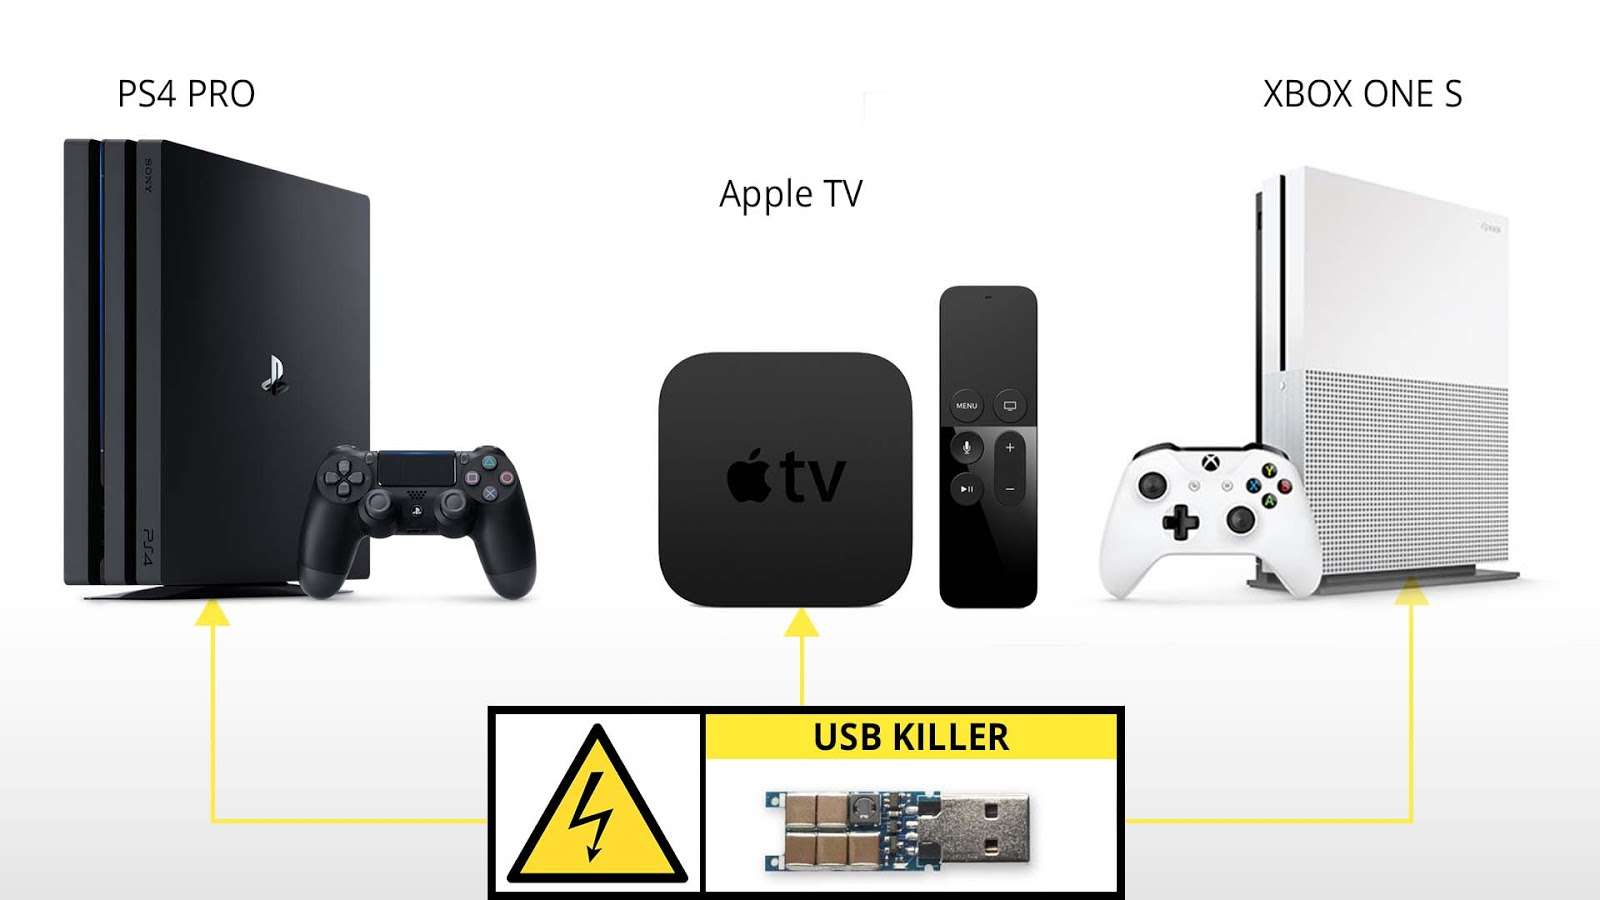 Will Xbox One S Ps4 Pro And Apple Tv Survive Usb Killer Mount Tech